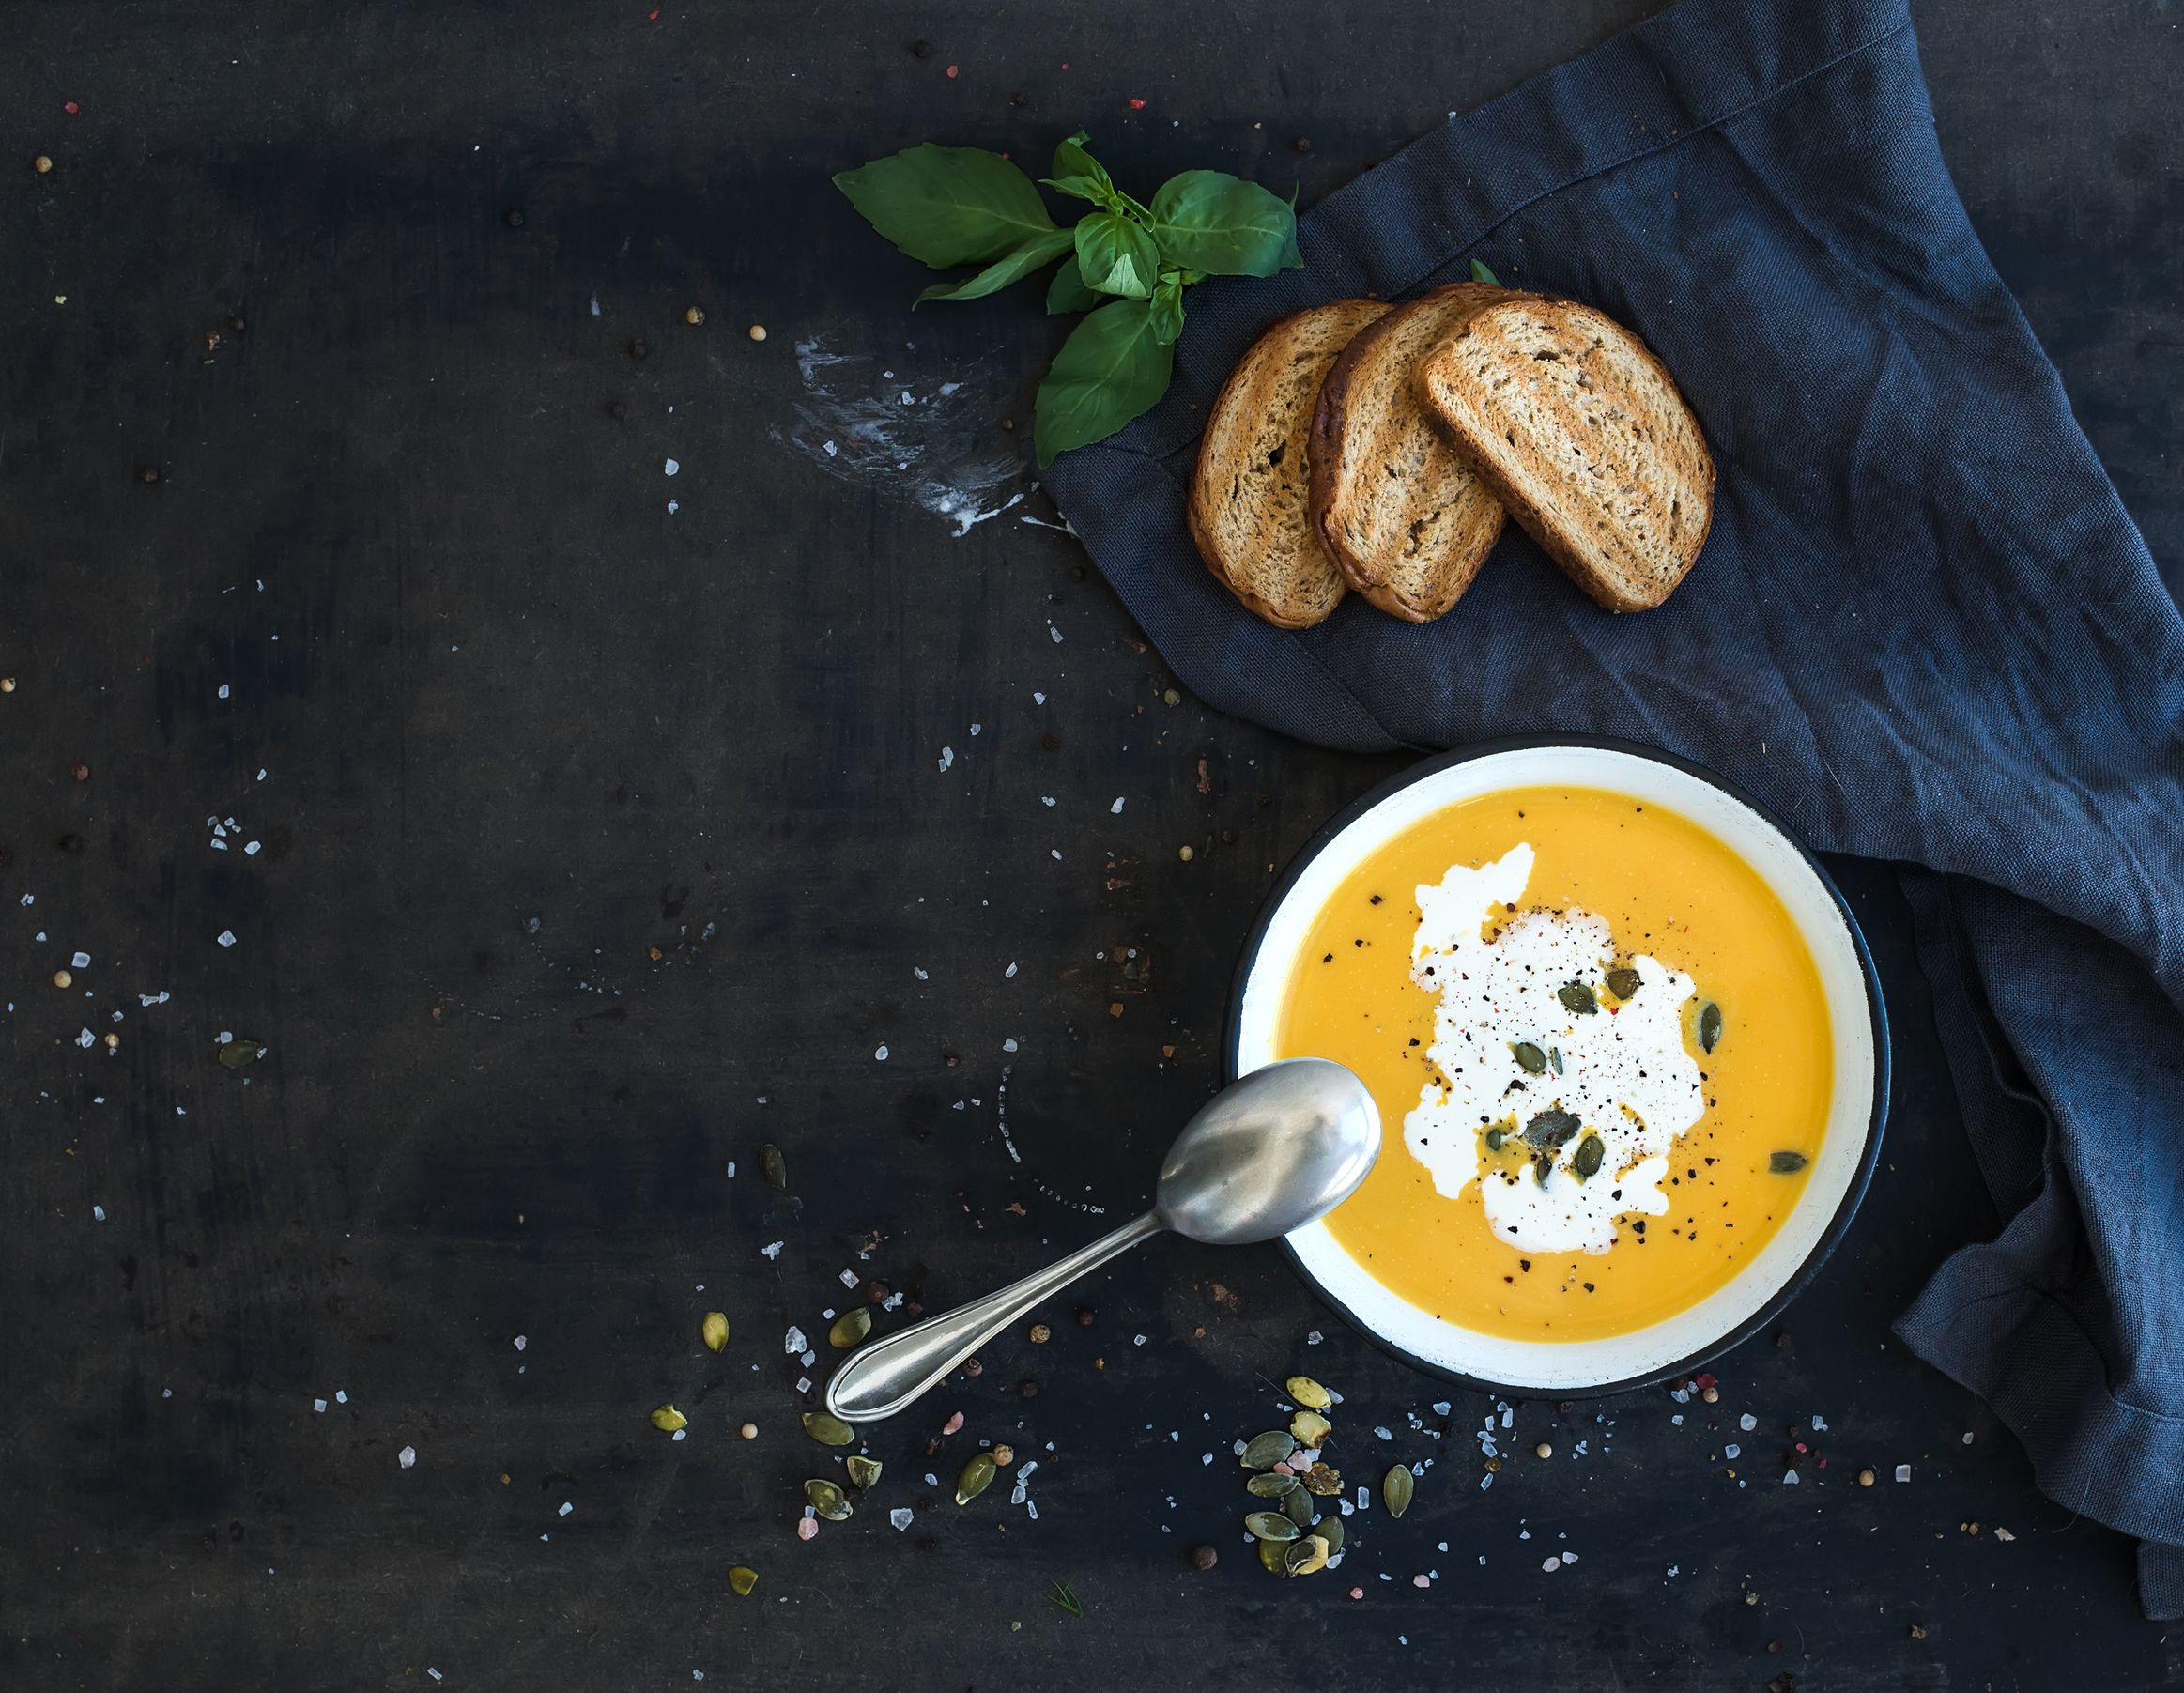 40578087 - pumpkin soup with cream, seeds, bread and fresh basil in rustic metal plate on grunge black background. top view, copy space